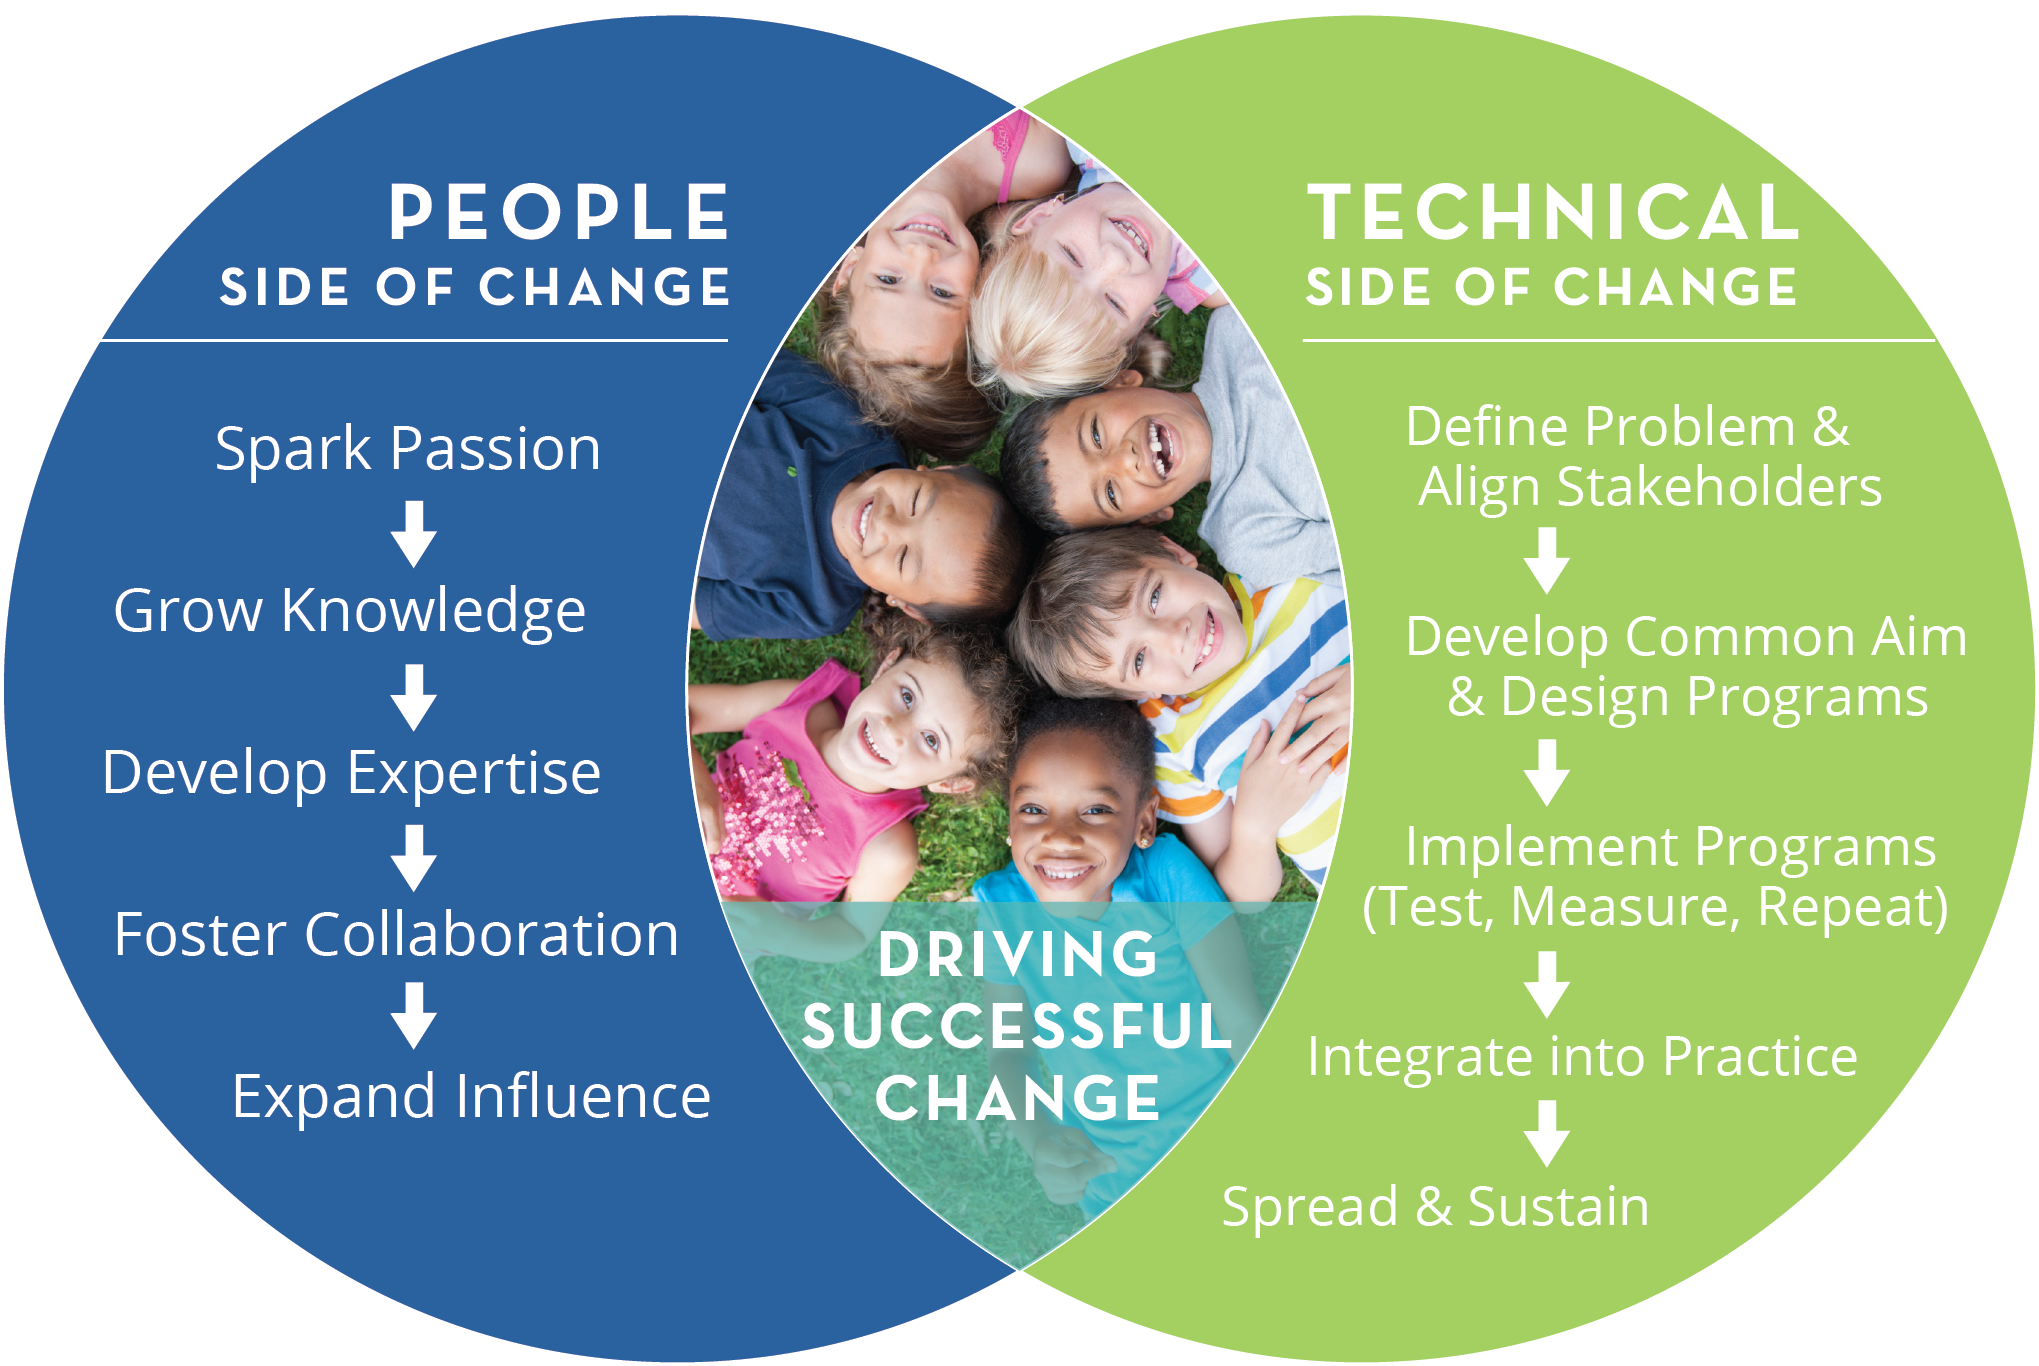 NICHQ's Change Management Approach